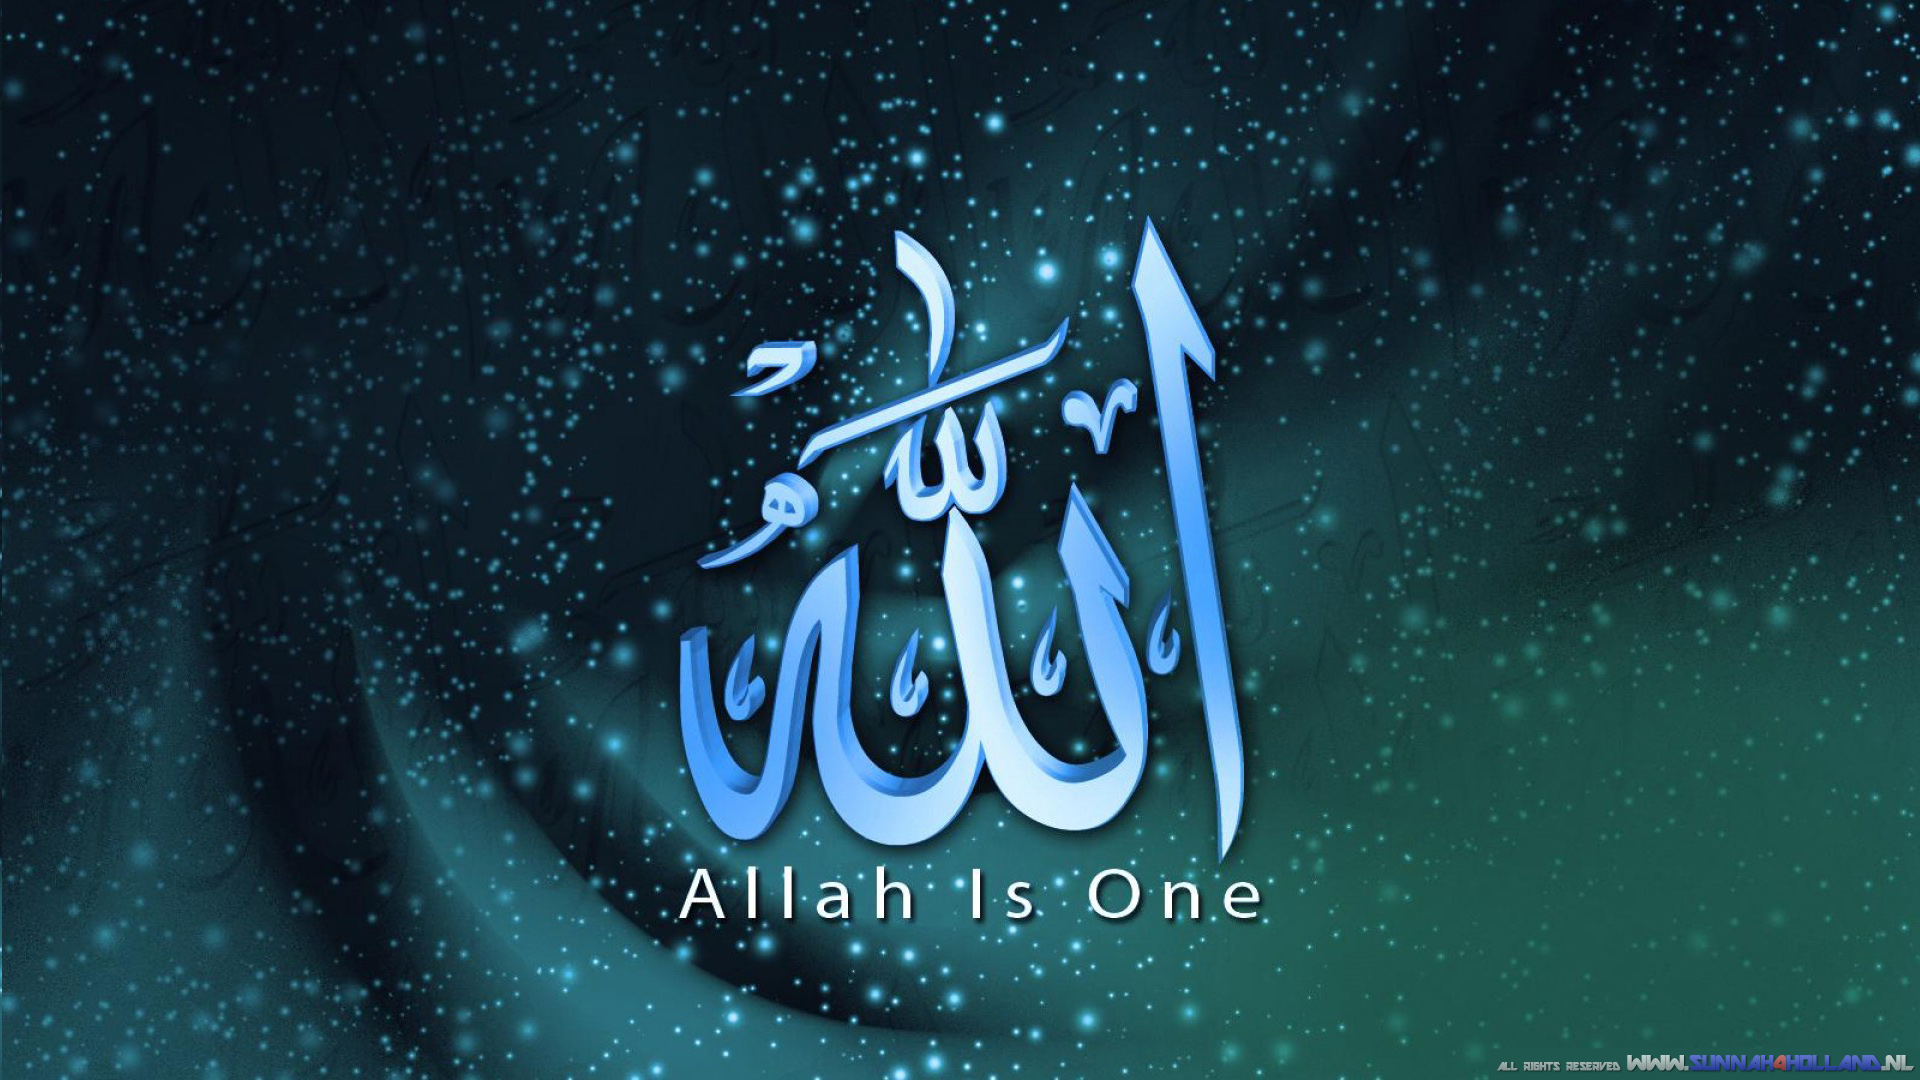 We Love Allah Wallpaper : Full-HD Wallpapers & co Sunnah4Holland